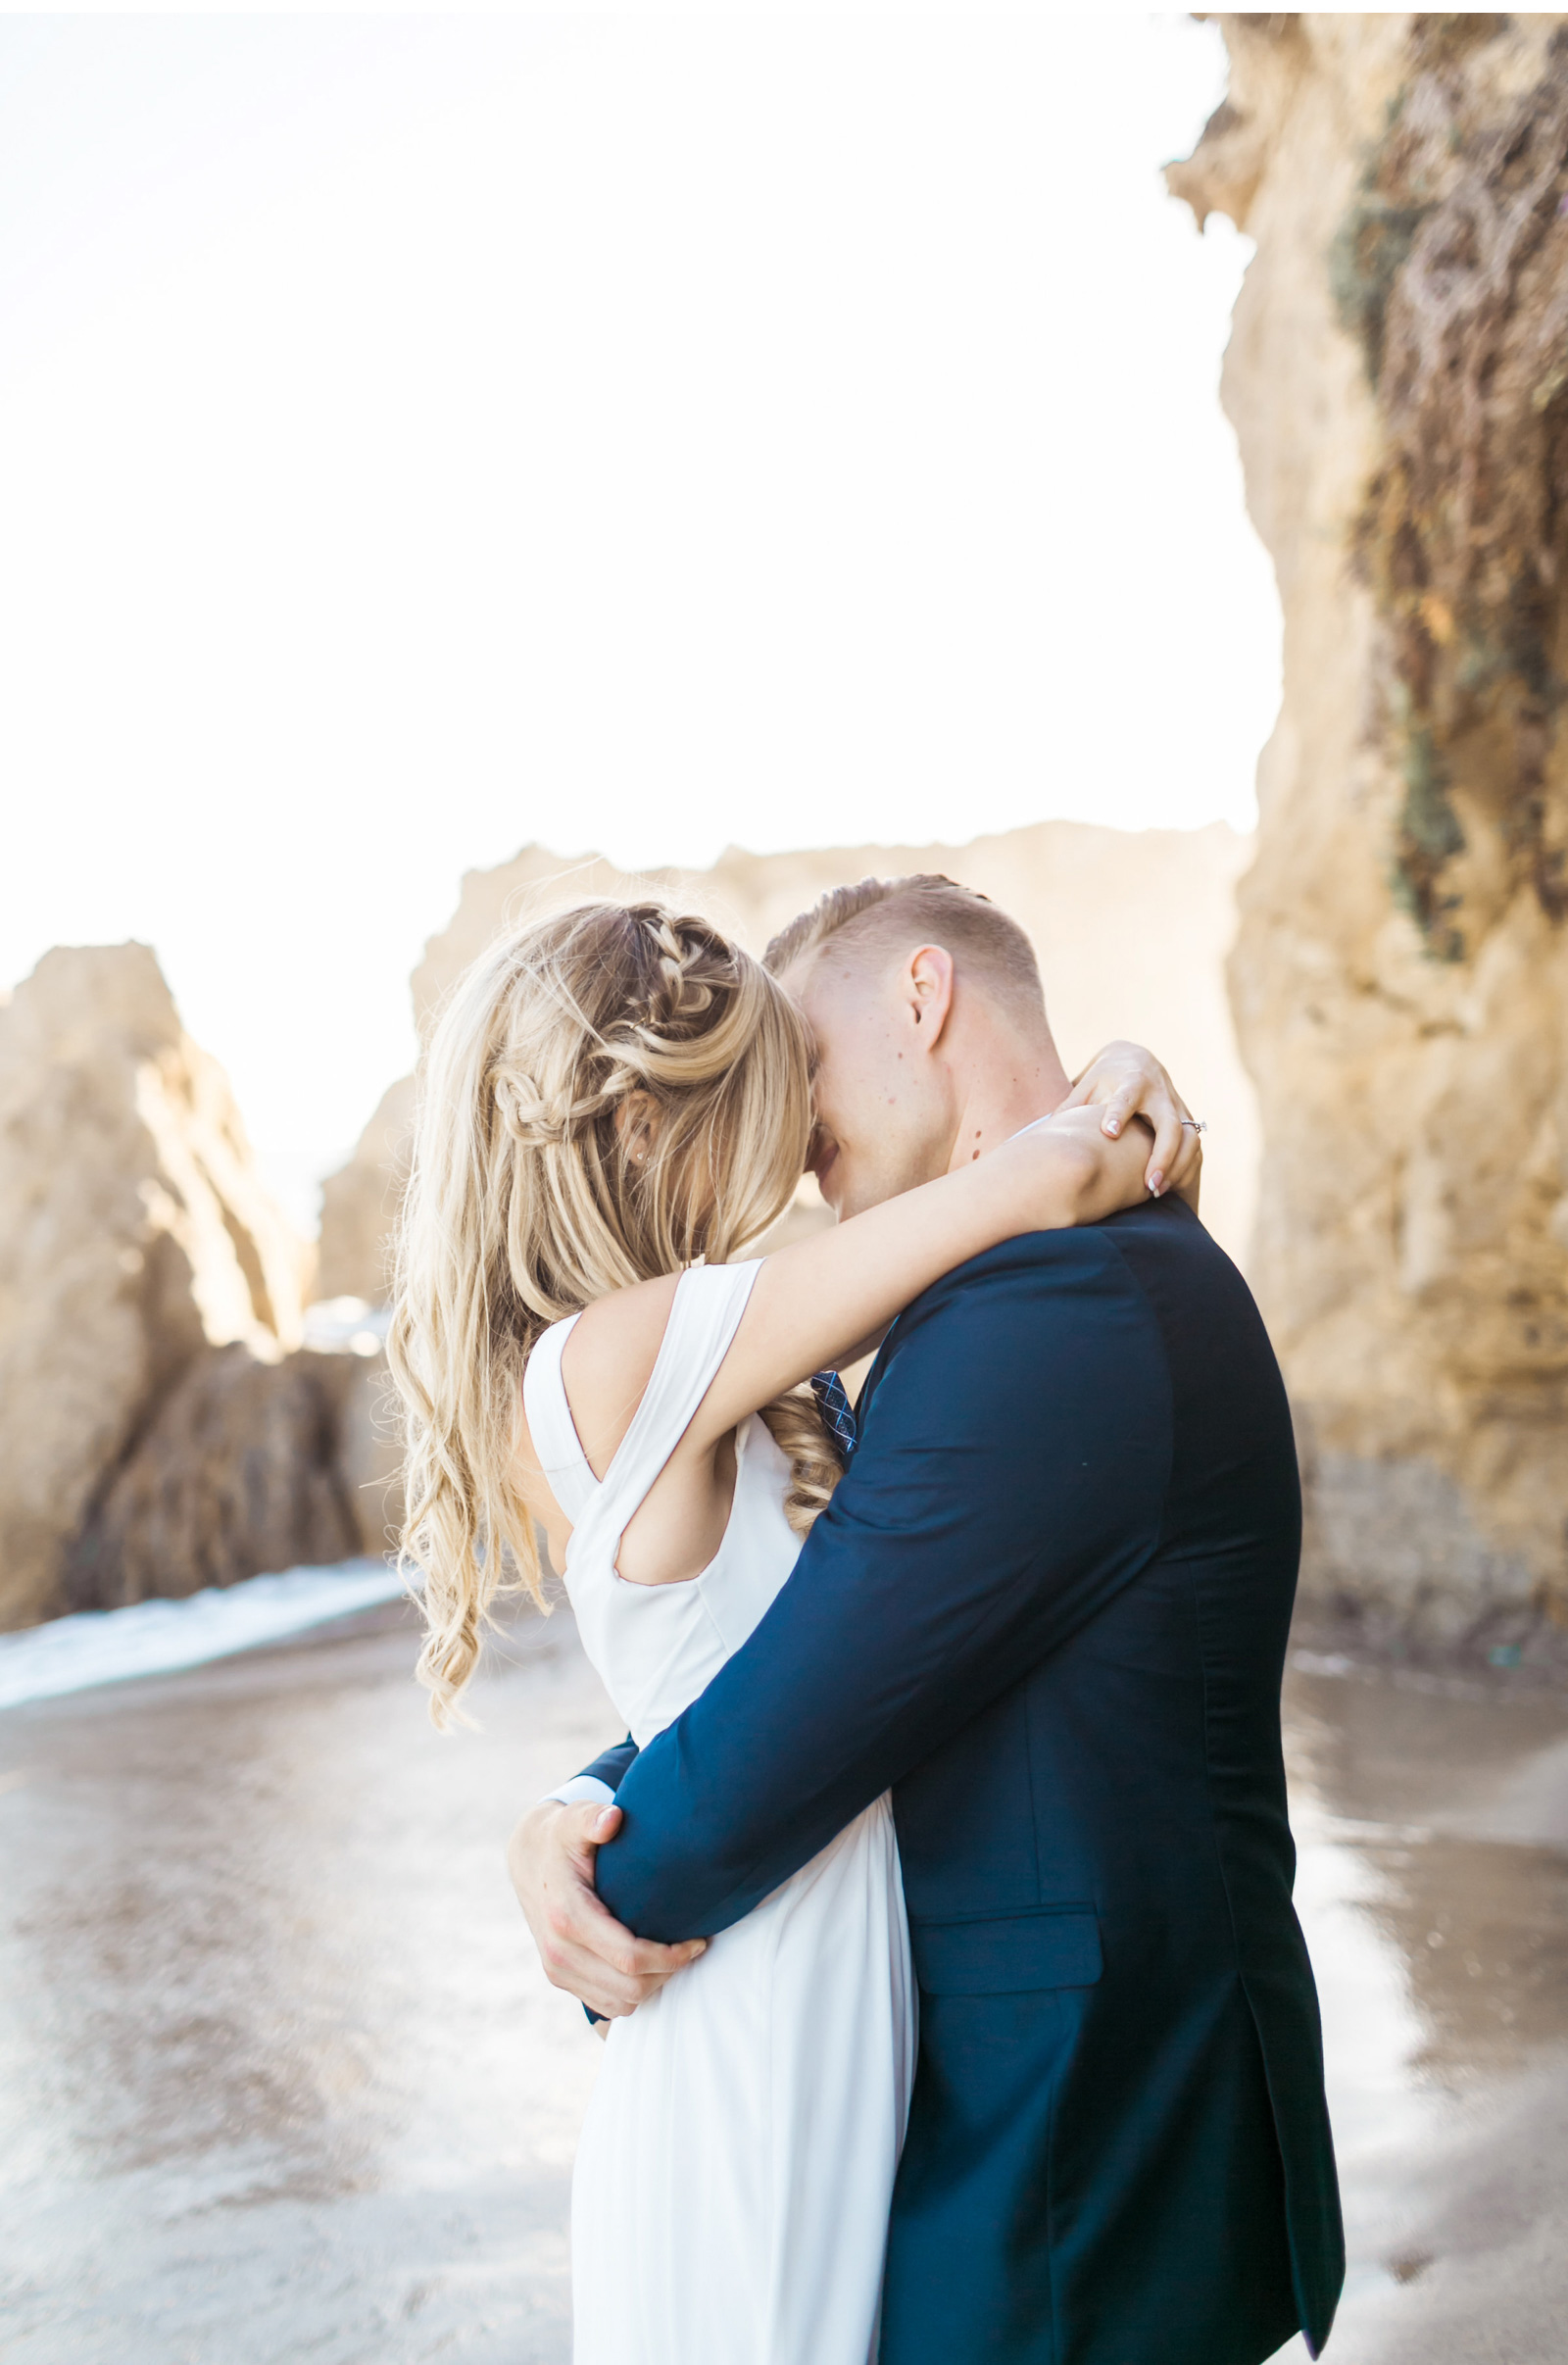 Style-Me-Pretty-Malibu-Wedding-Natalie-Schutt-Photography_14.jpg